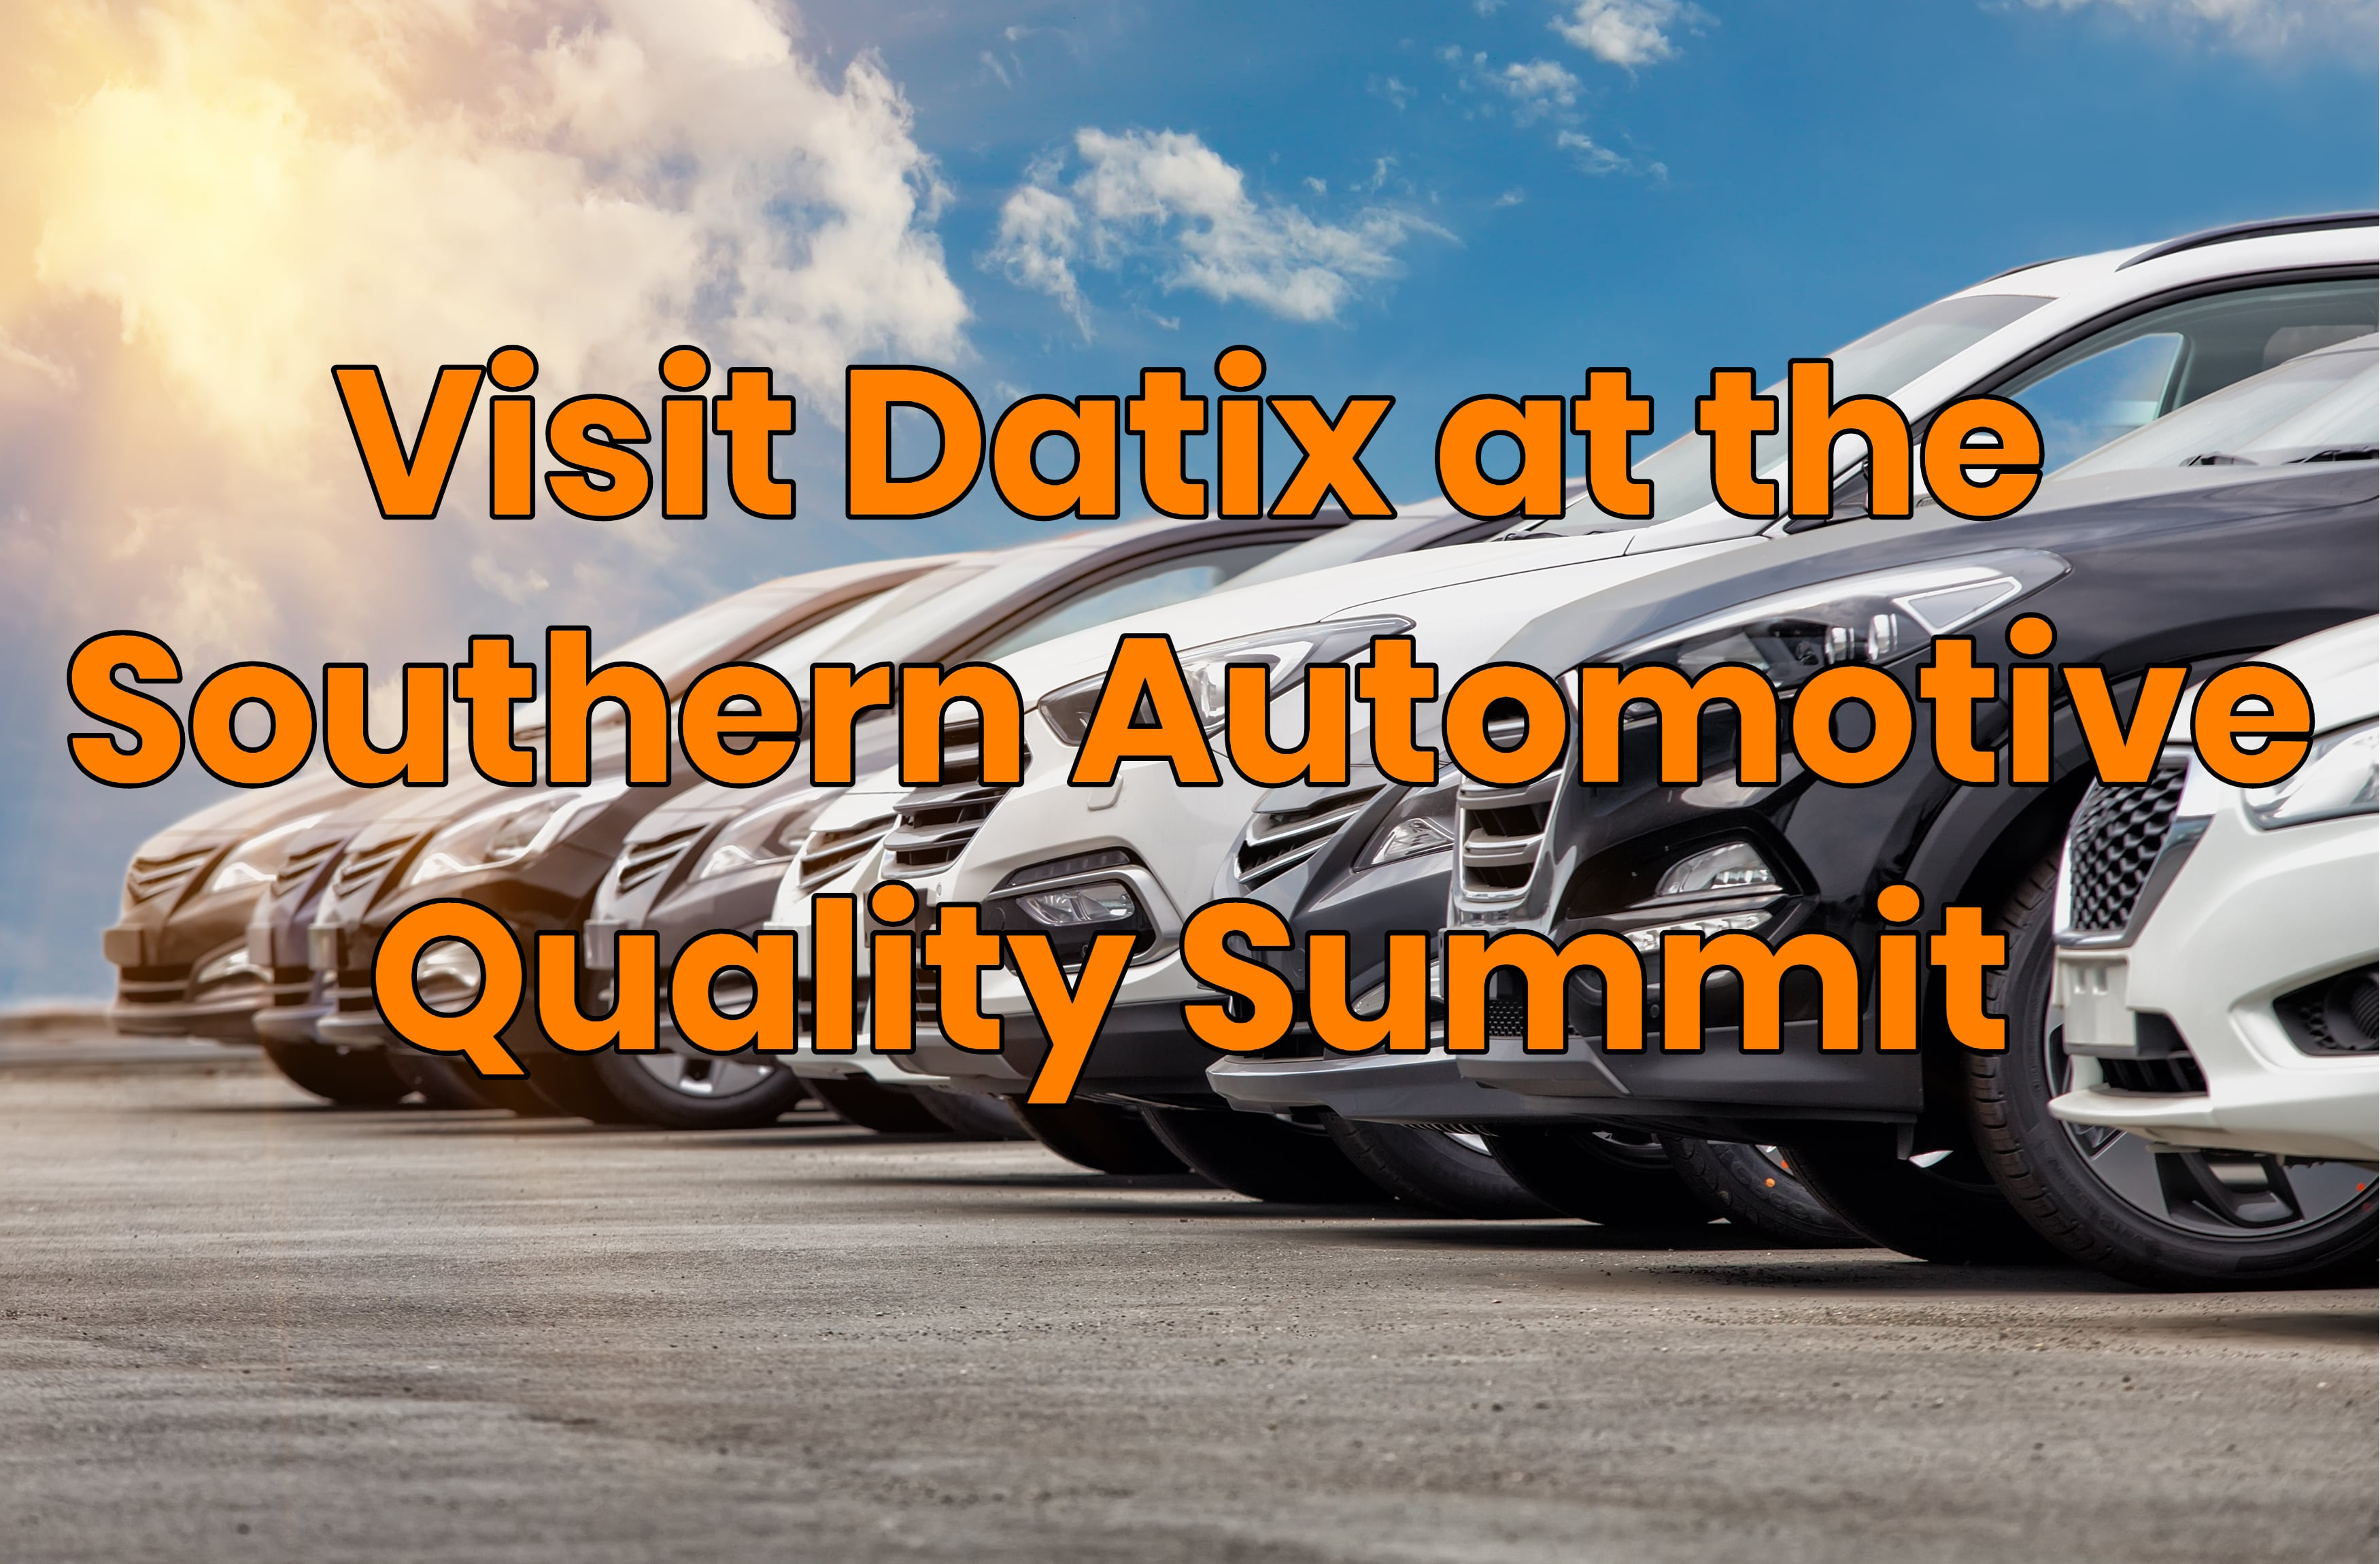 Visit Datix at the Southern Automotive Quality Summit!